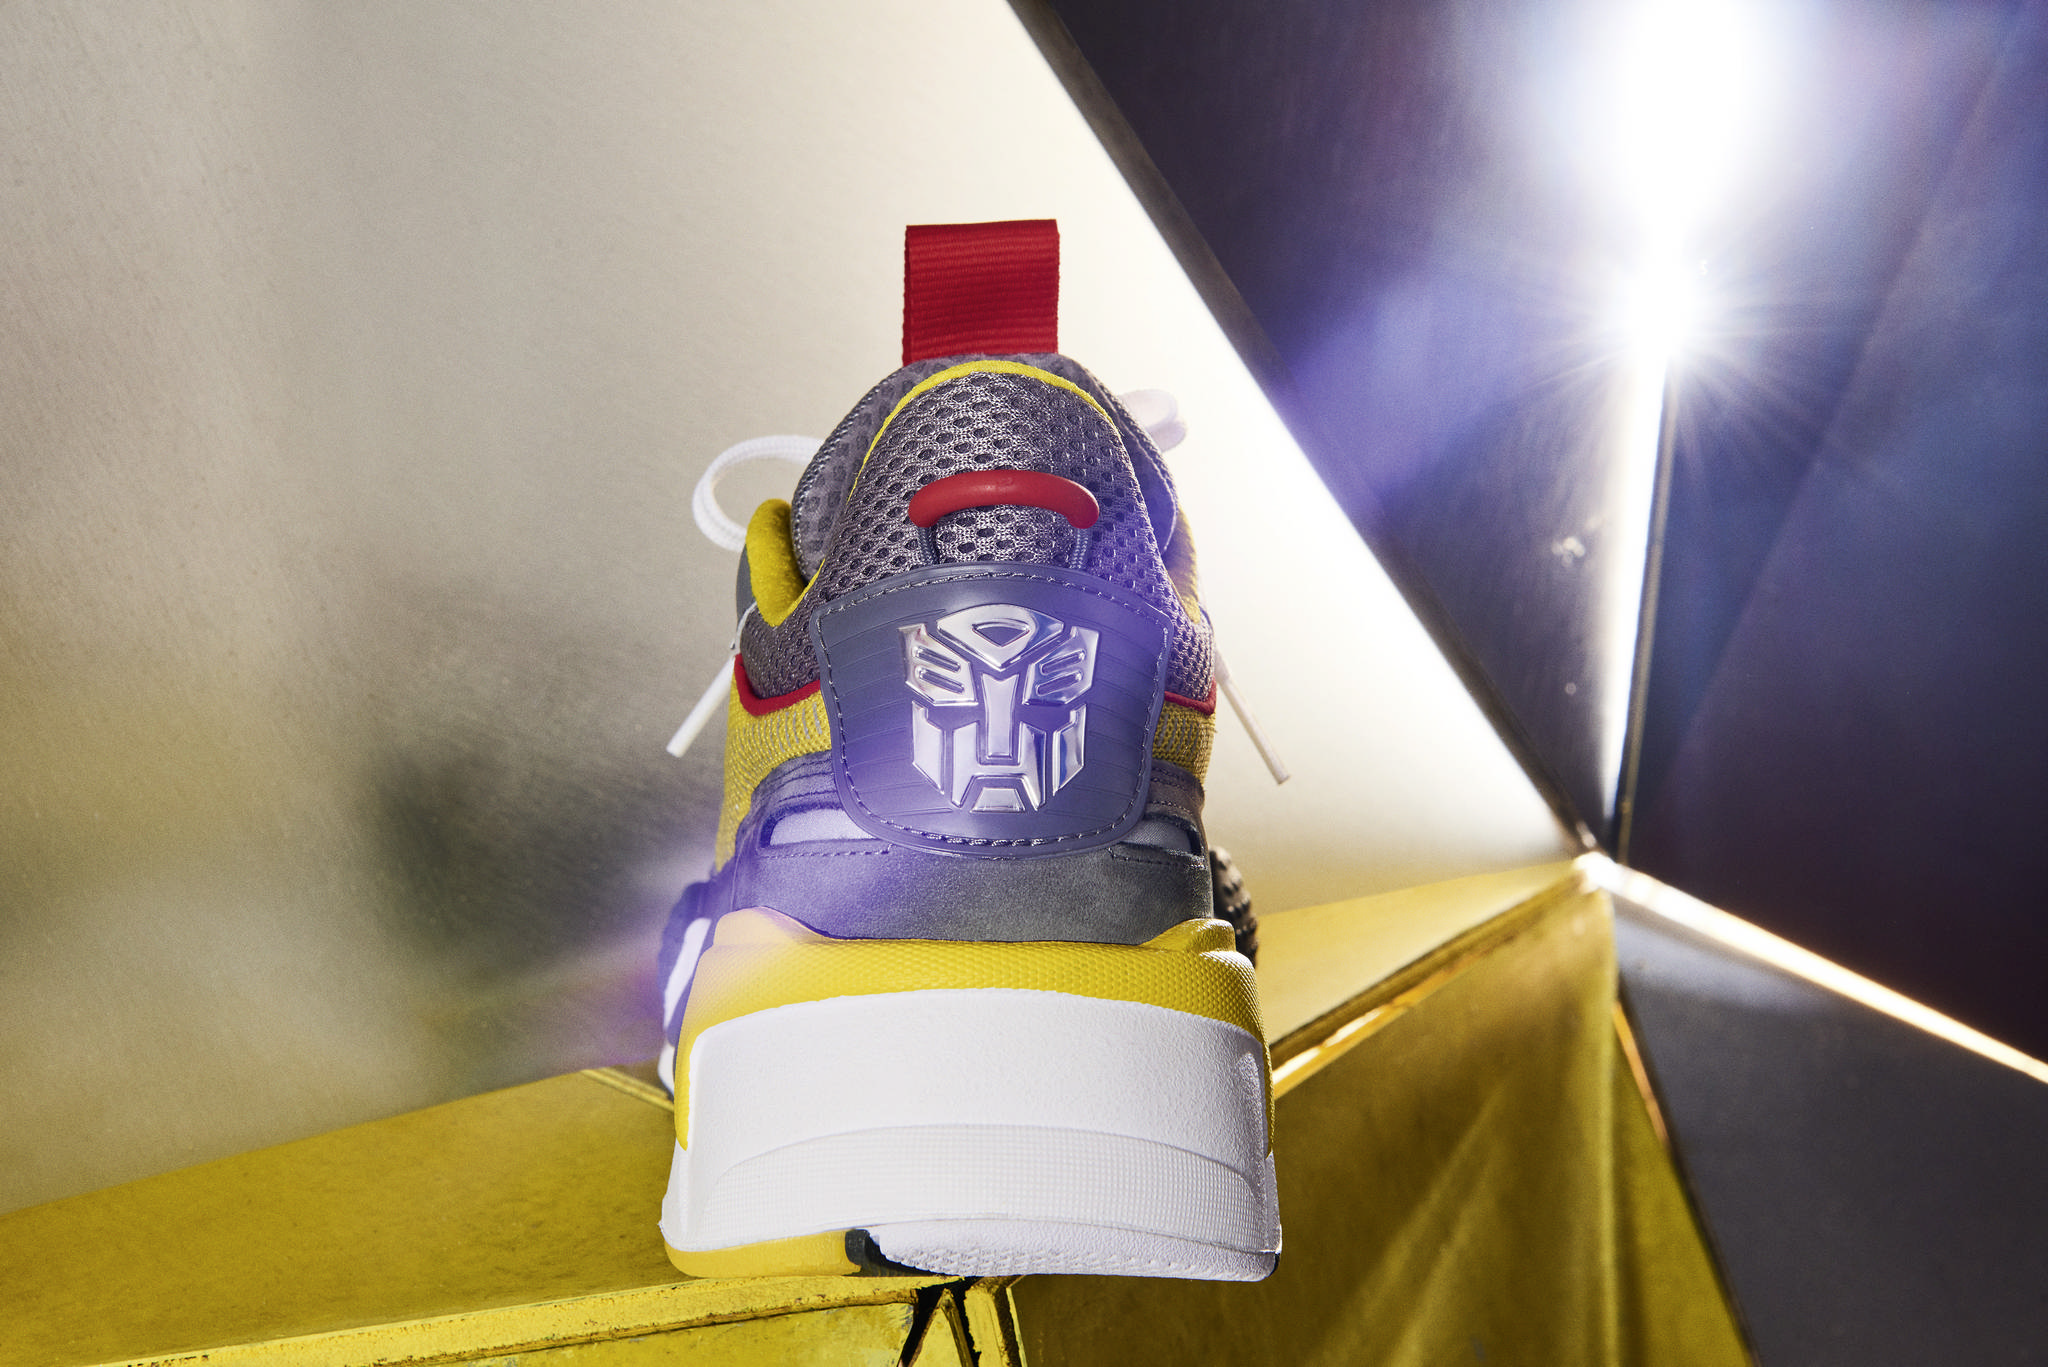 c753444f883fdd Transformers x Puma Sneakers Revealed! - Transformers News - TFW2005